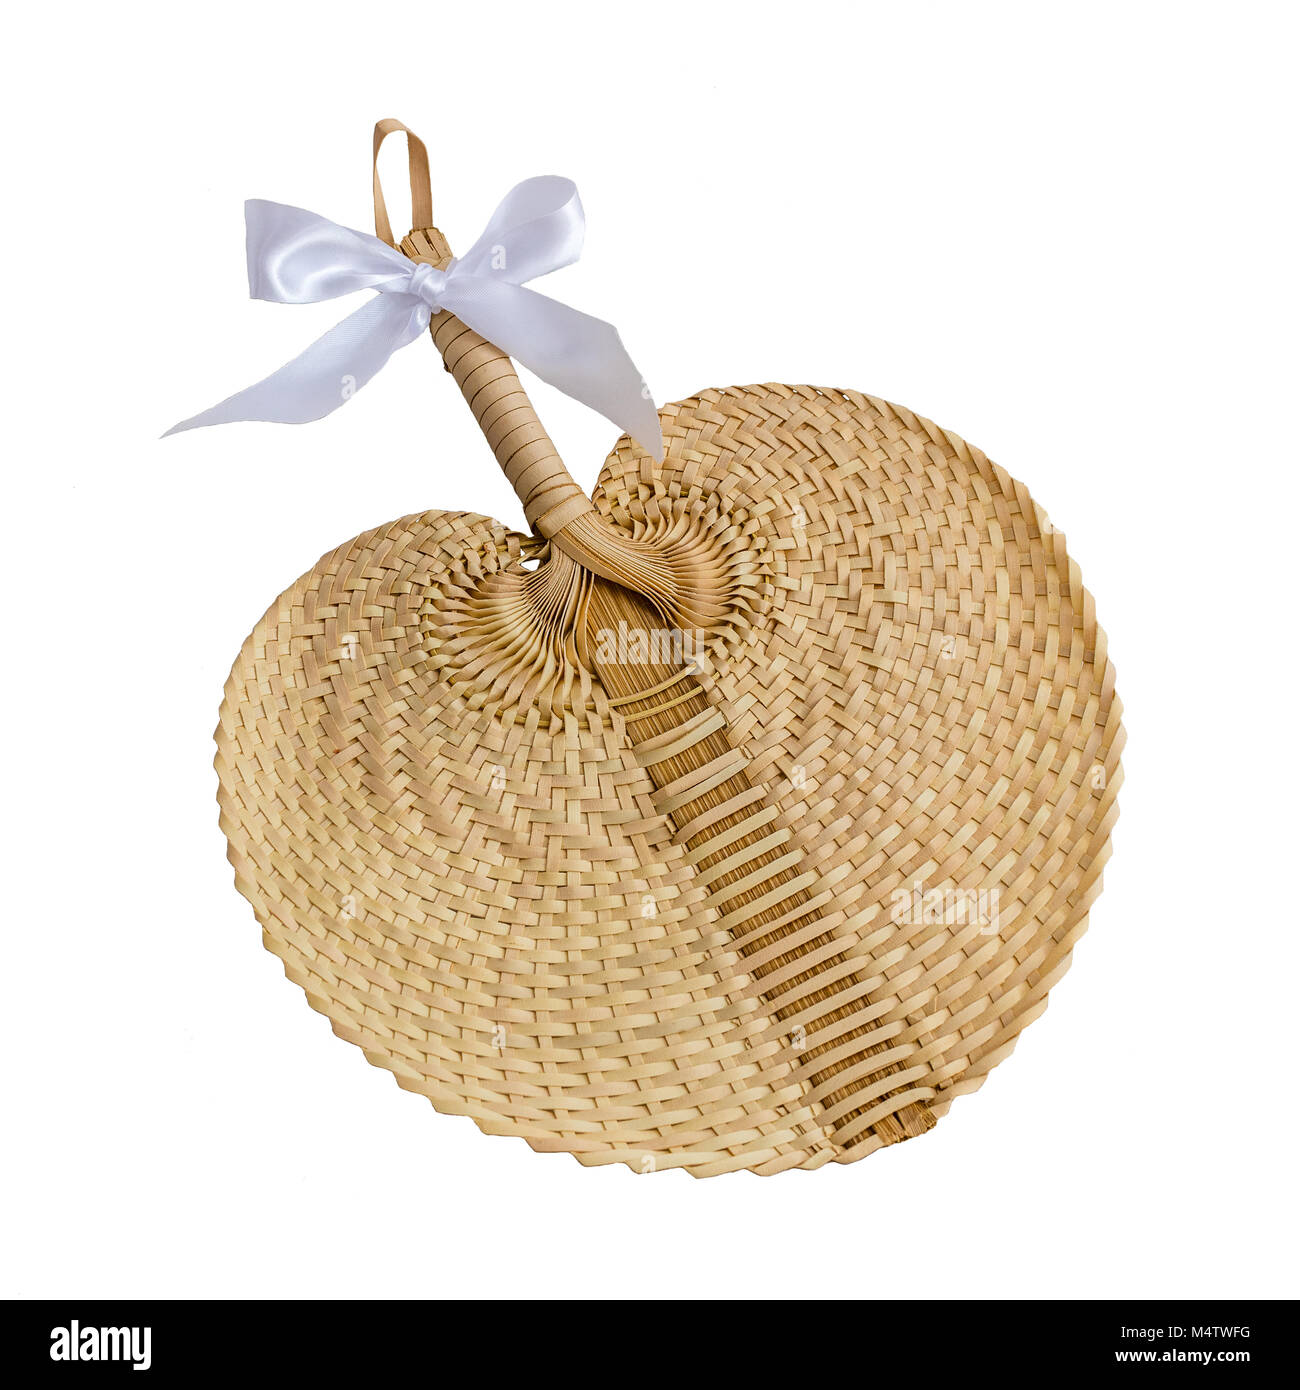 Straw hand fan with white ribbon bow. White background, isolated object. Square picture. - Stock Image